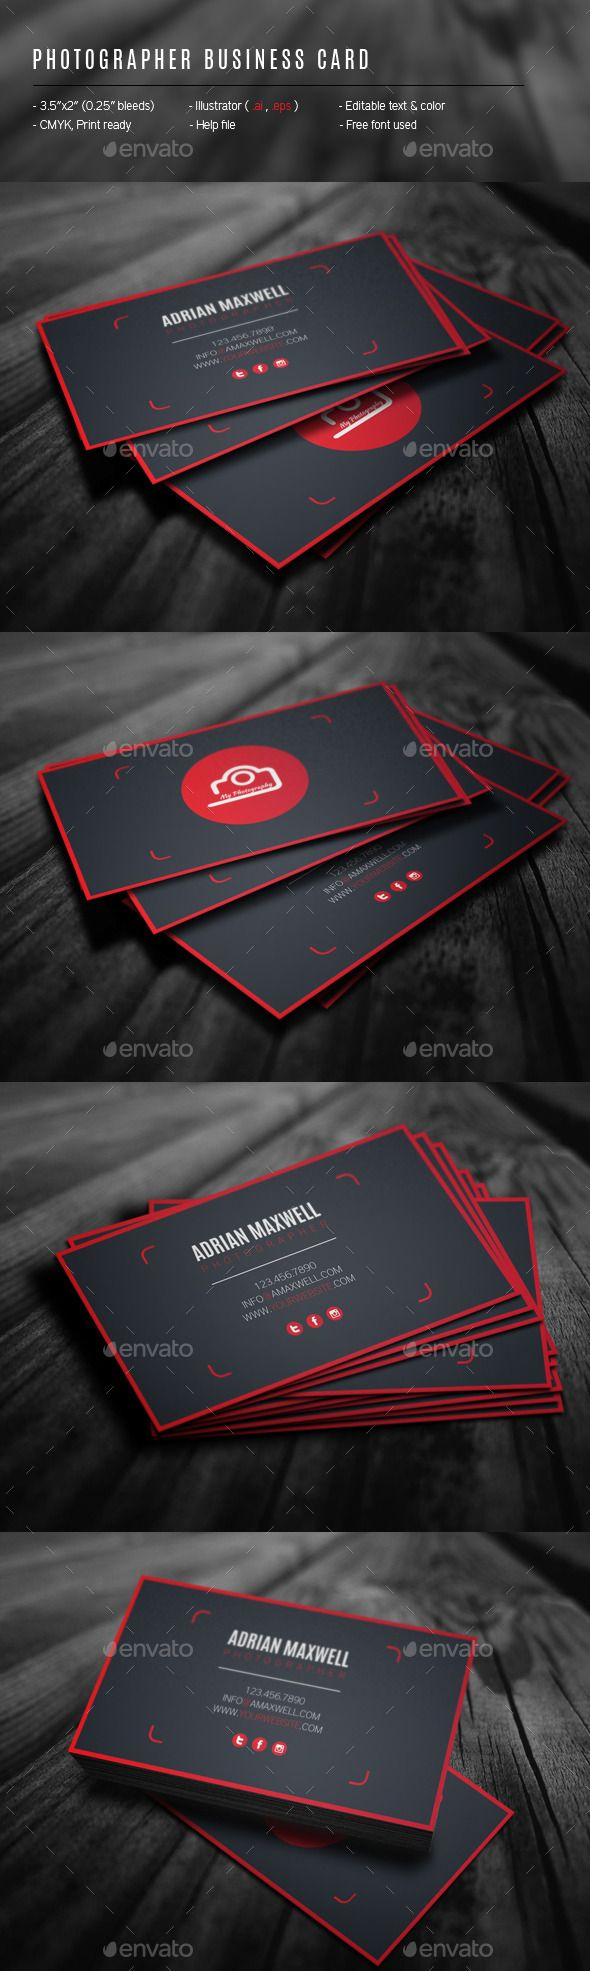 Photographer Business Card Template #design Download: http://graphicriver.net/item/photographer-business-card/12447034?ref=ksioks